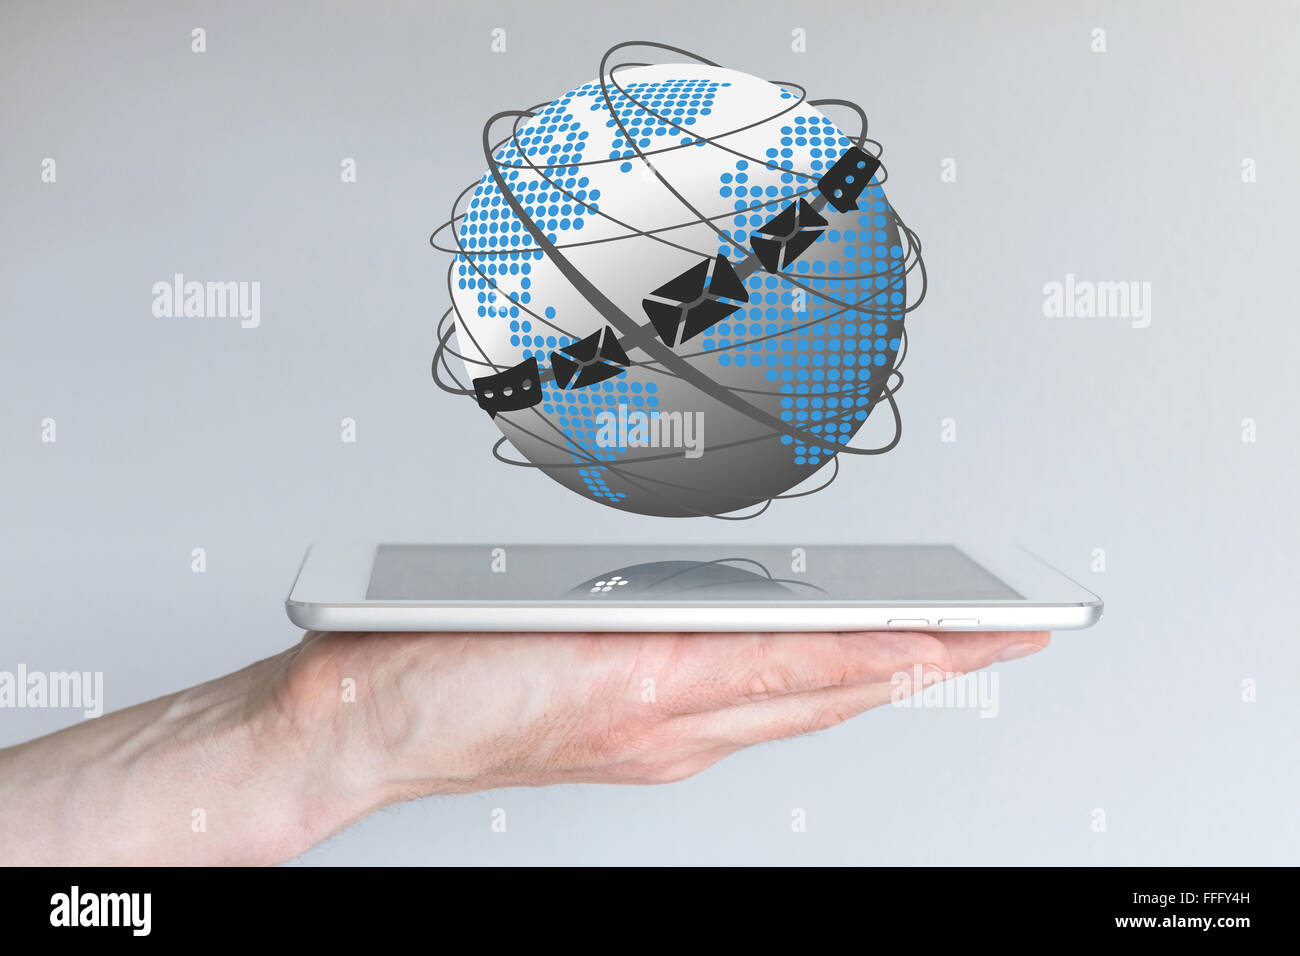 Concept of global communication via email, chat and messaging - Stock Image